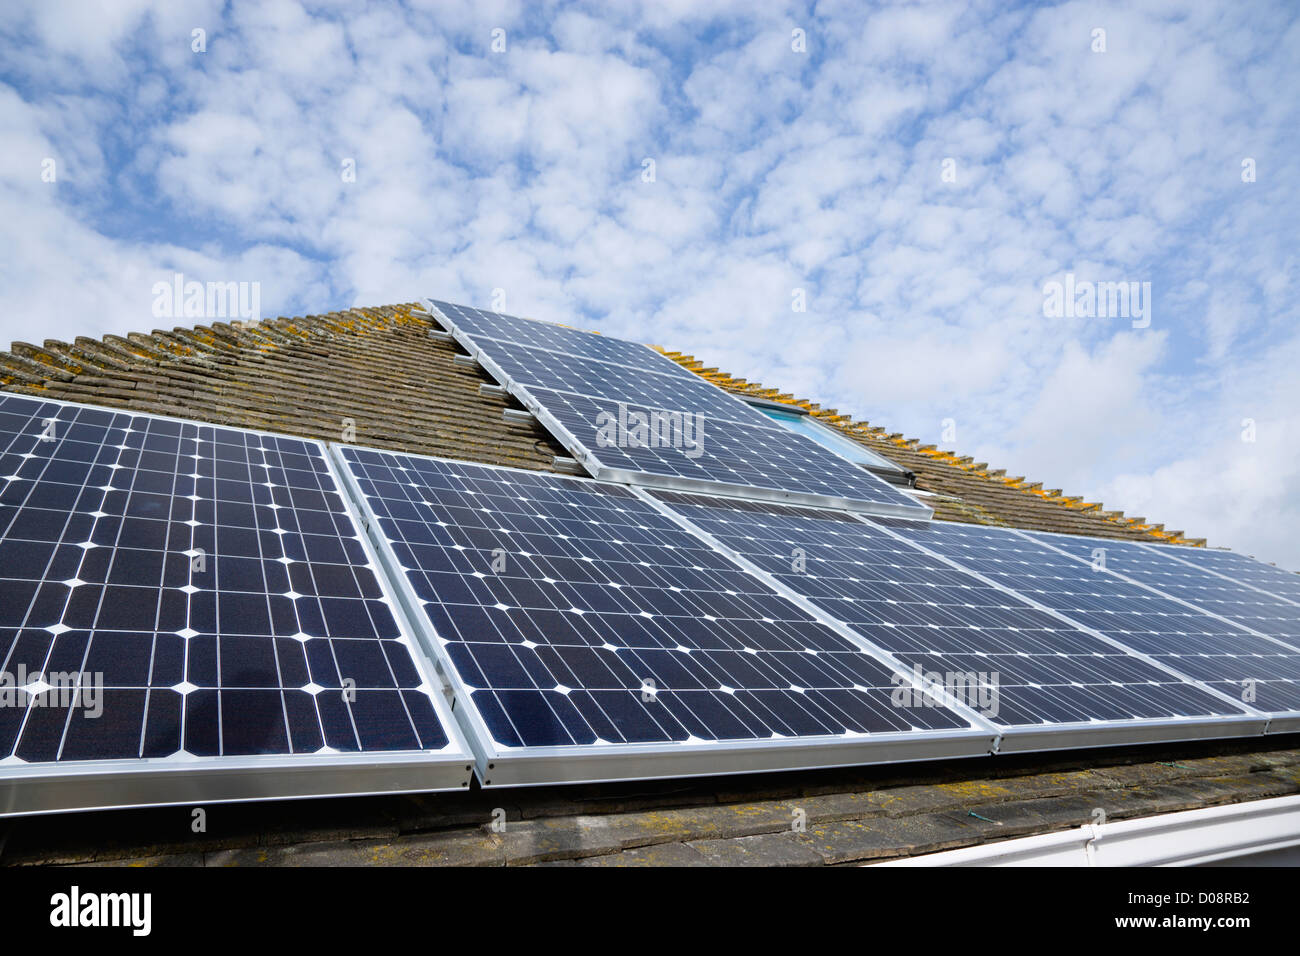 Architecture, Alternative Energy, Electricity, Solar photovoltaic roof panel on detached house for electricity conversion. - Stock Image